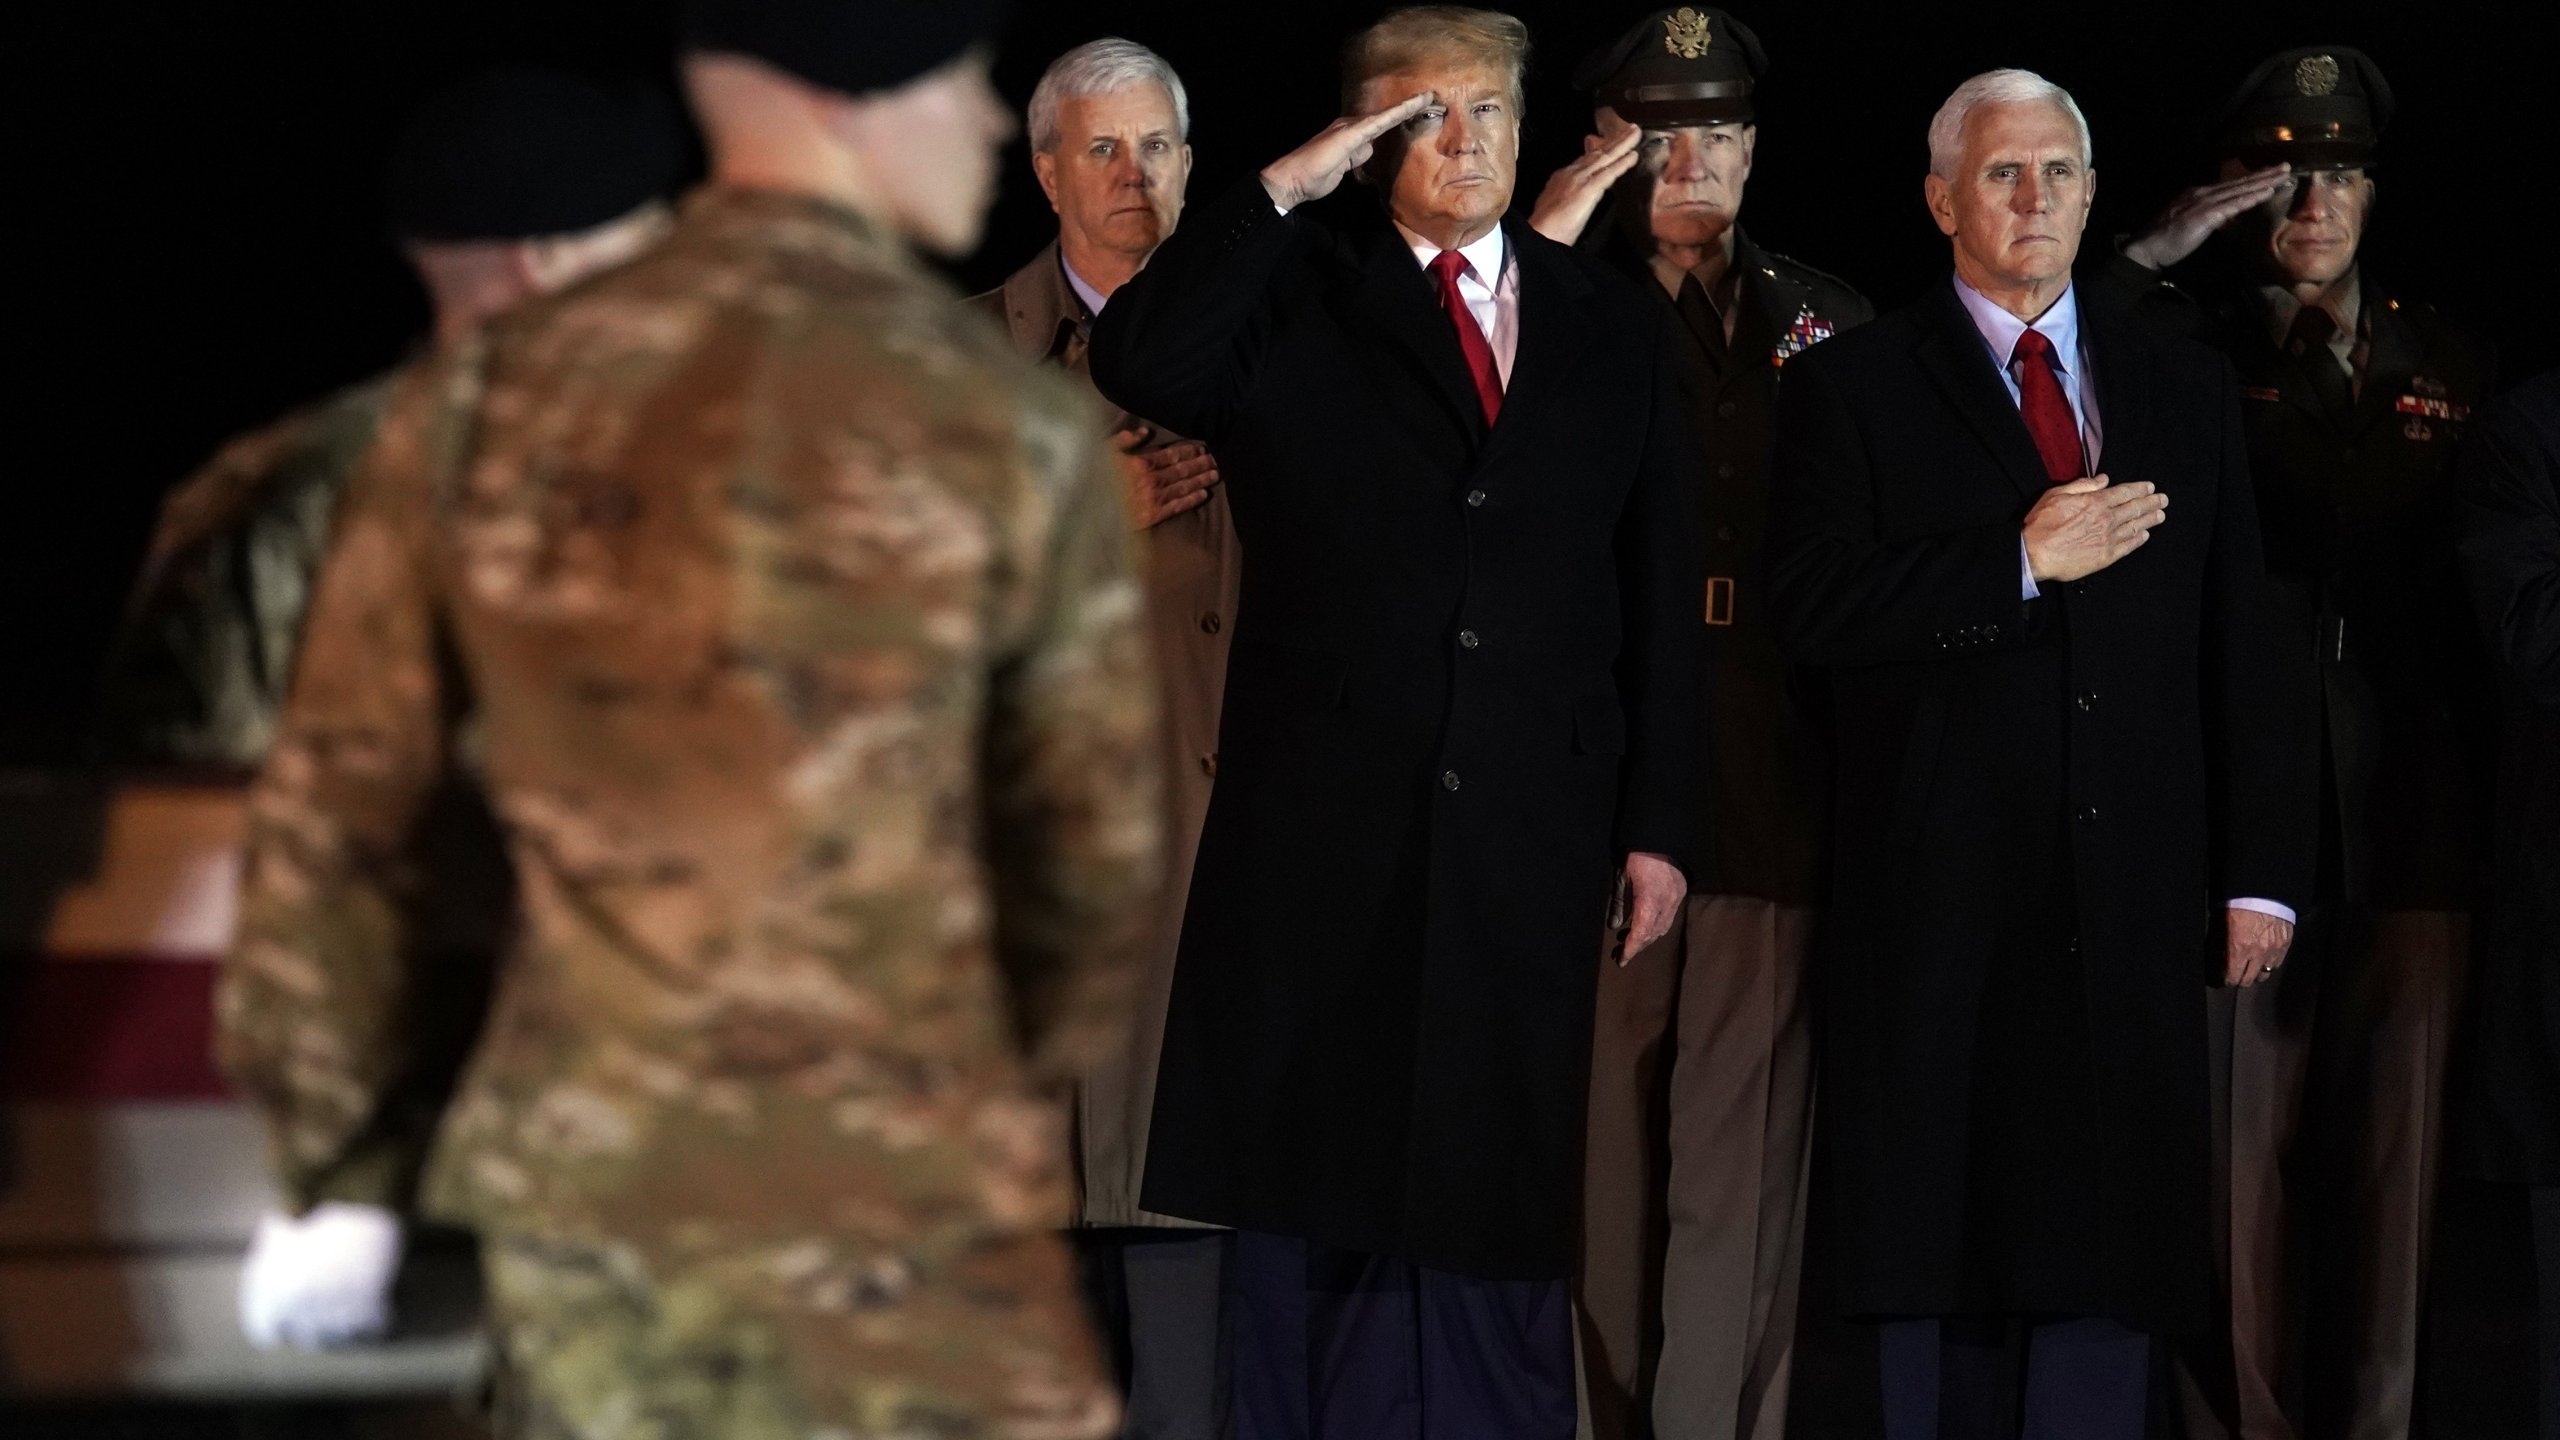 President Trump Vp Pence Pay Respects To 2 U S Soldiers Killed In Afghanistan Wttv Cbs4indy